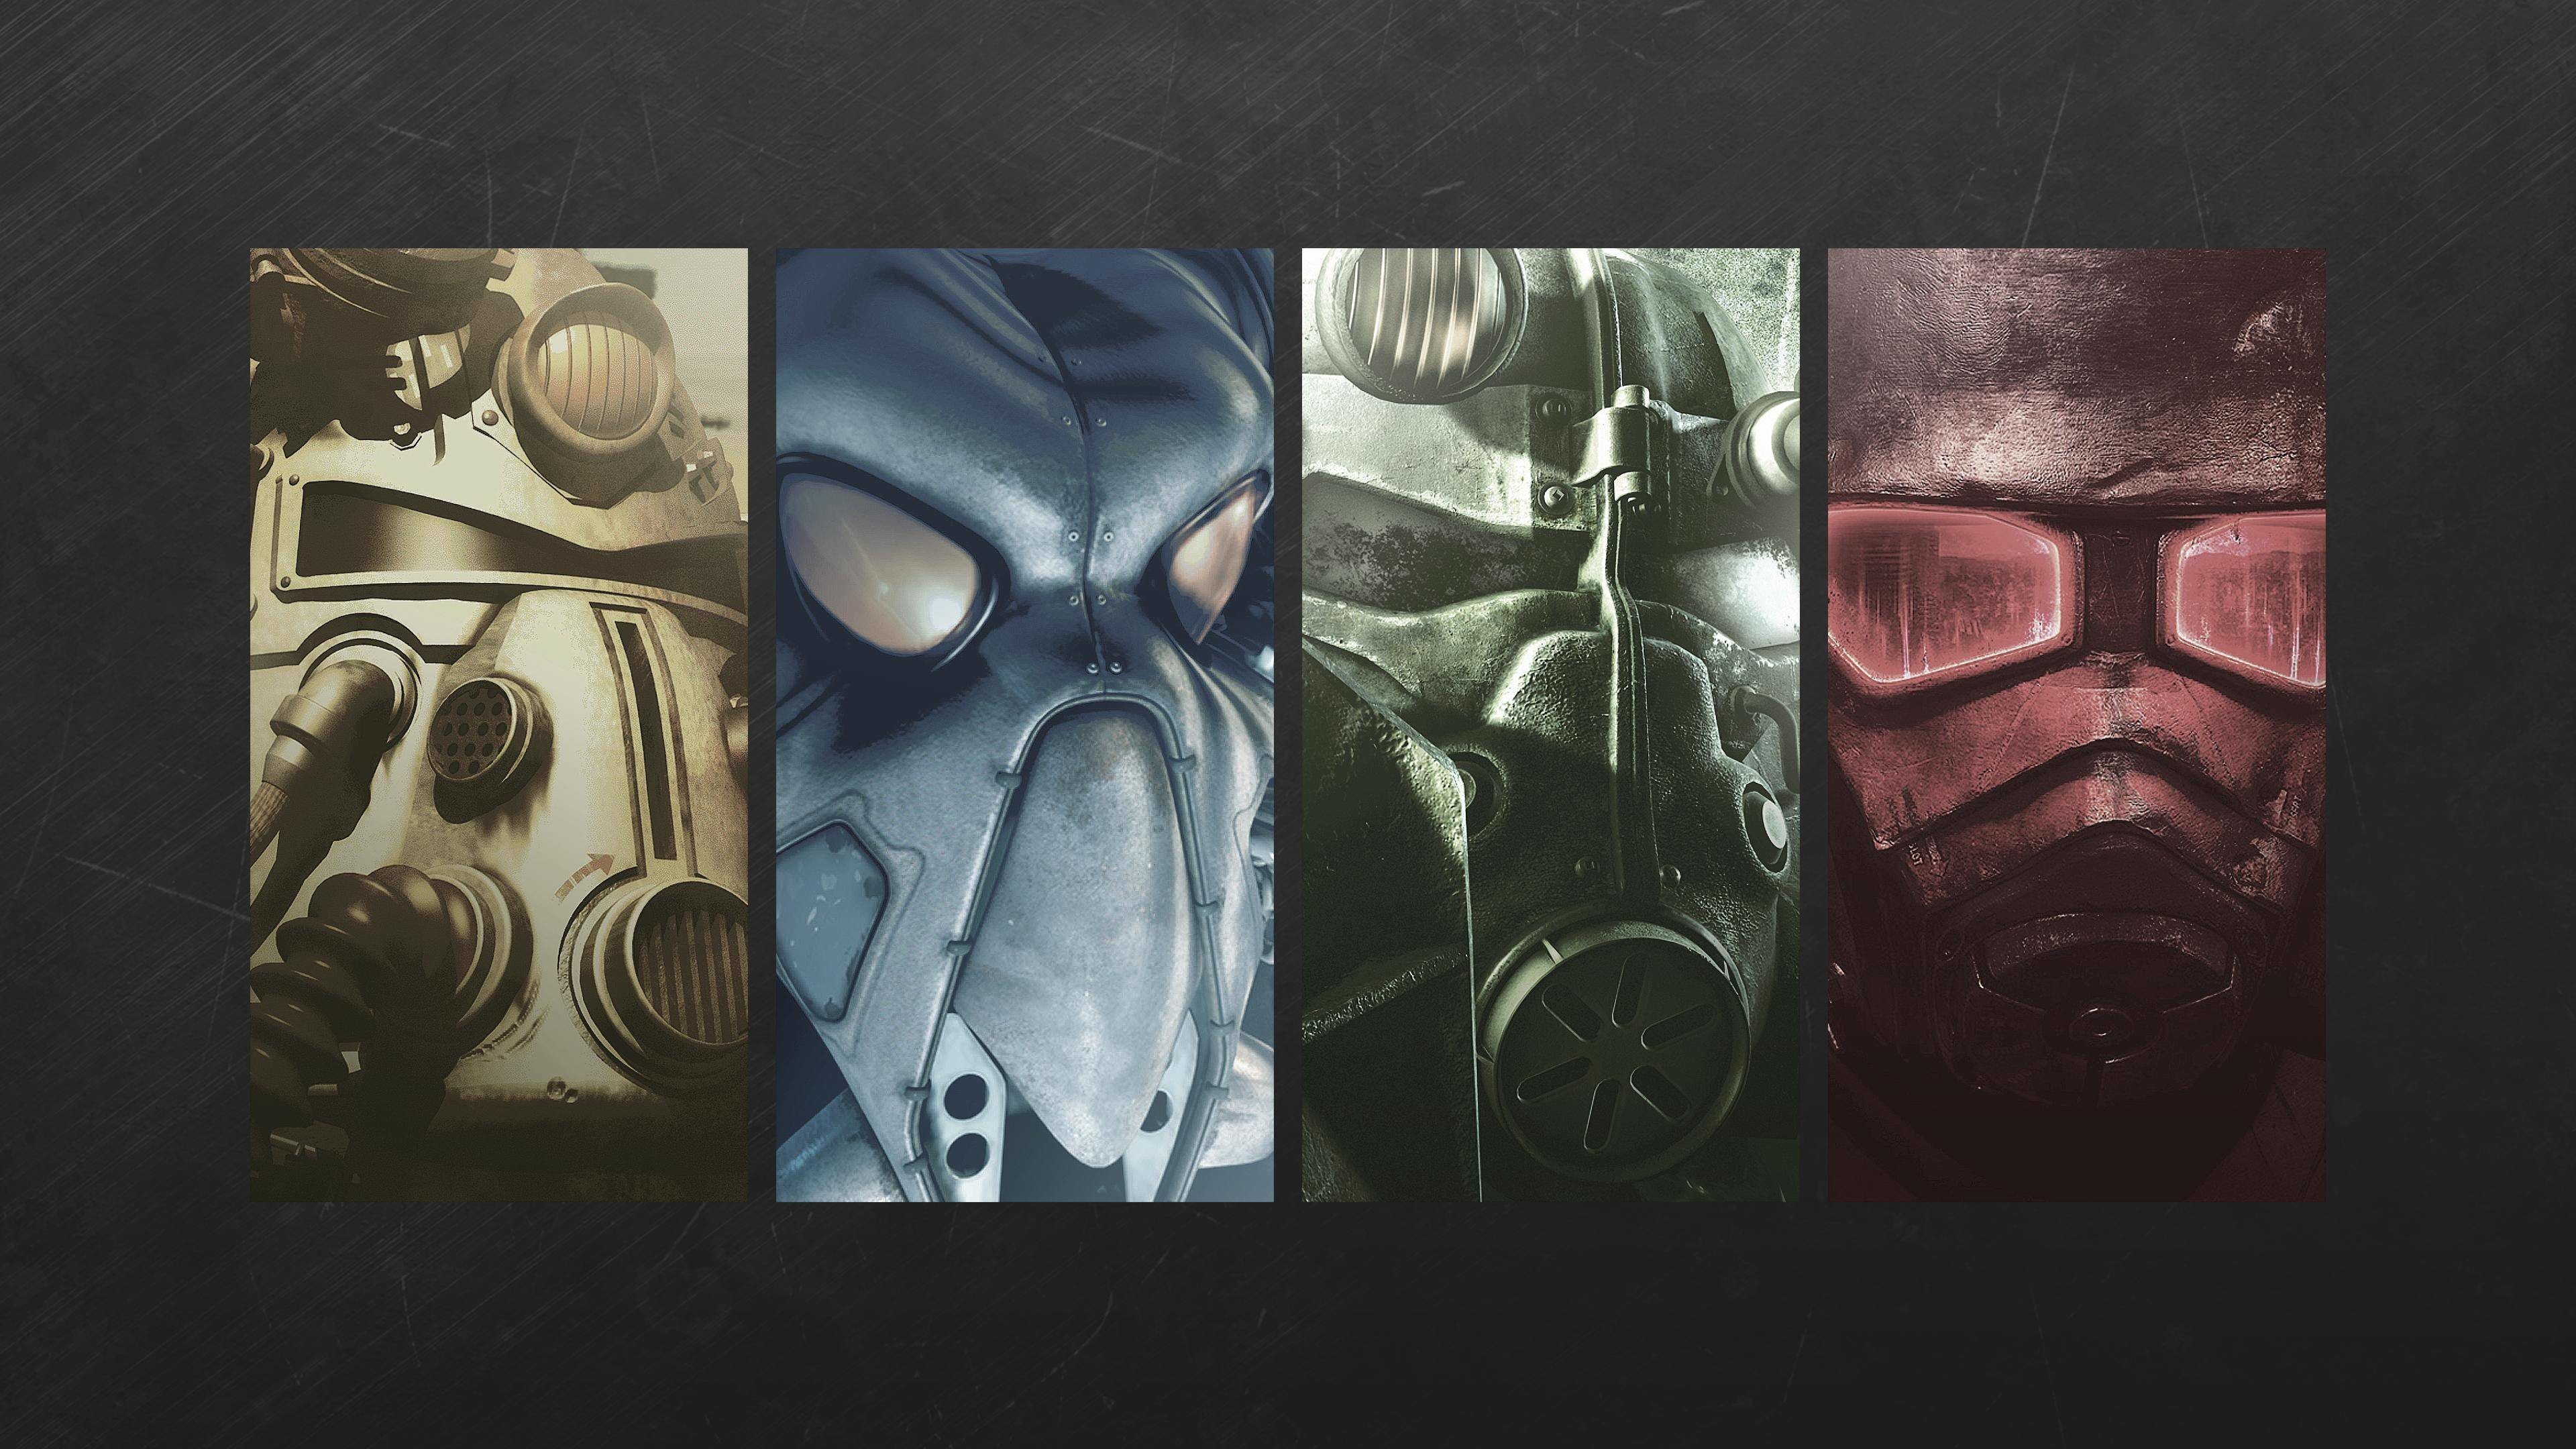 Fallout HD Wallpapers Backgrounds Wallpaper   Wallpapers 4k   Pinterest    Hd wallpaper, Wallpaper backgrounds and Wallpaper